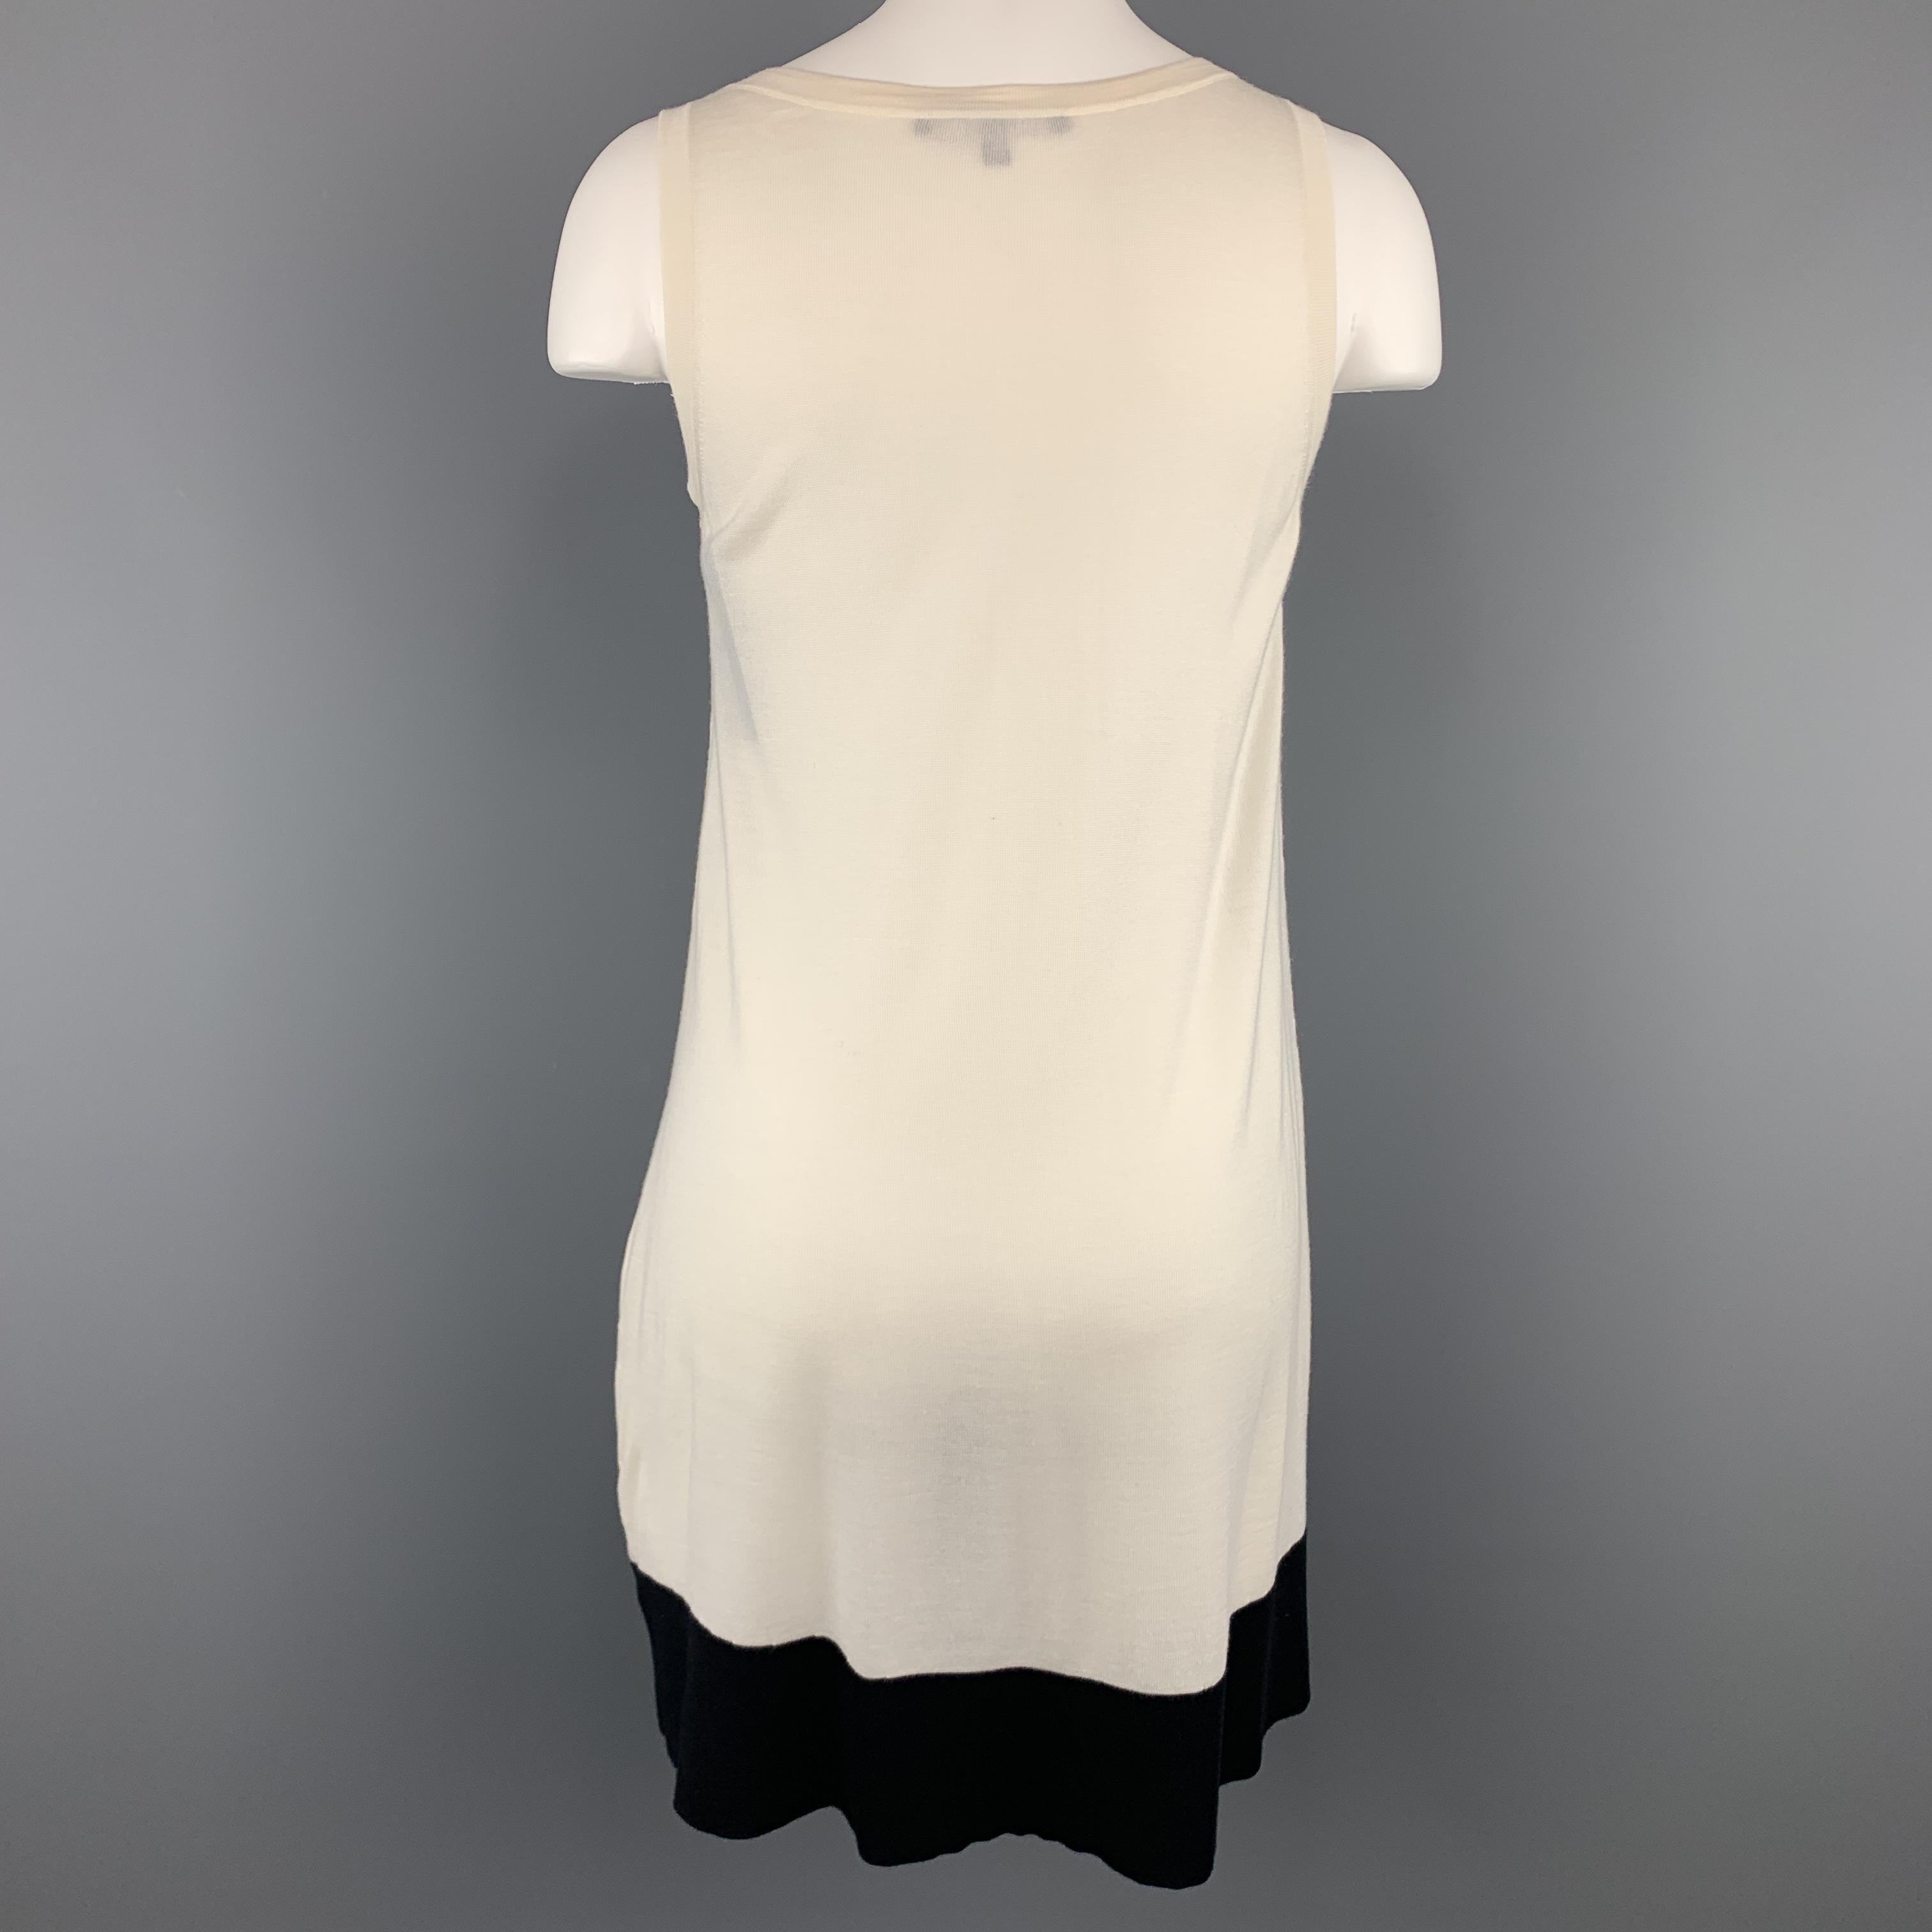 813664727 GUCCI Size XS Cream and Black Silk Blend Knit Tank Dress For Sale at 1stdibs